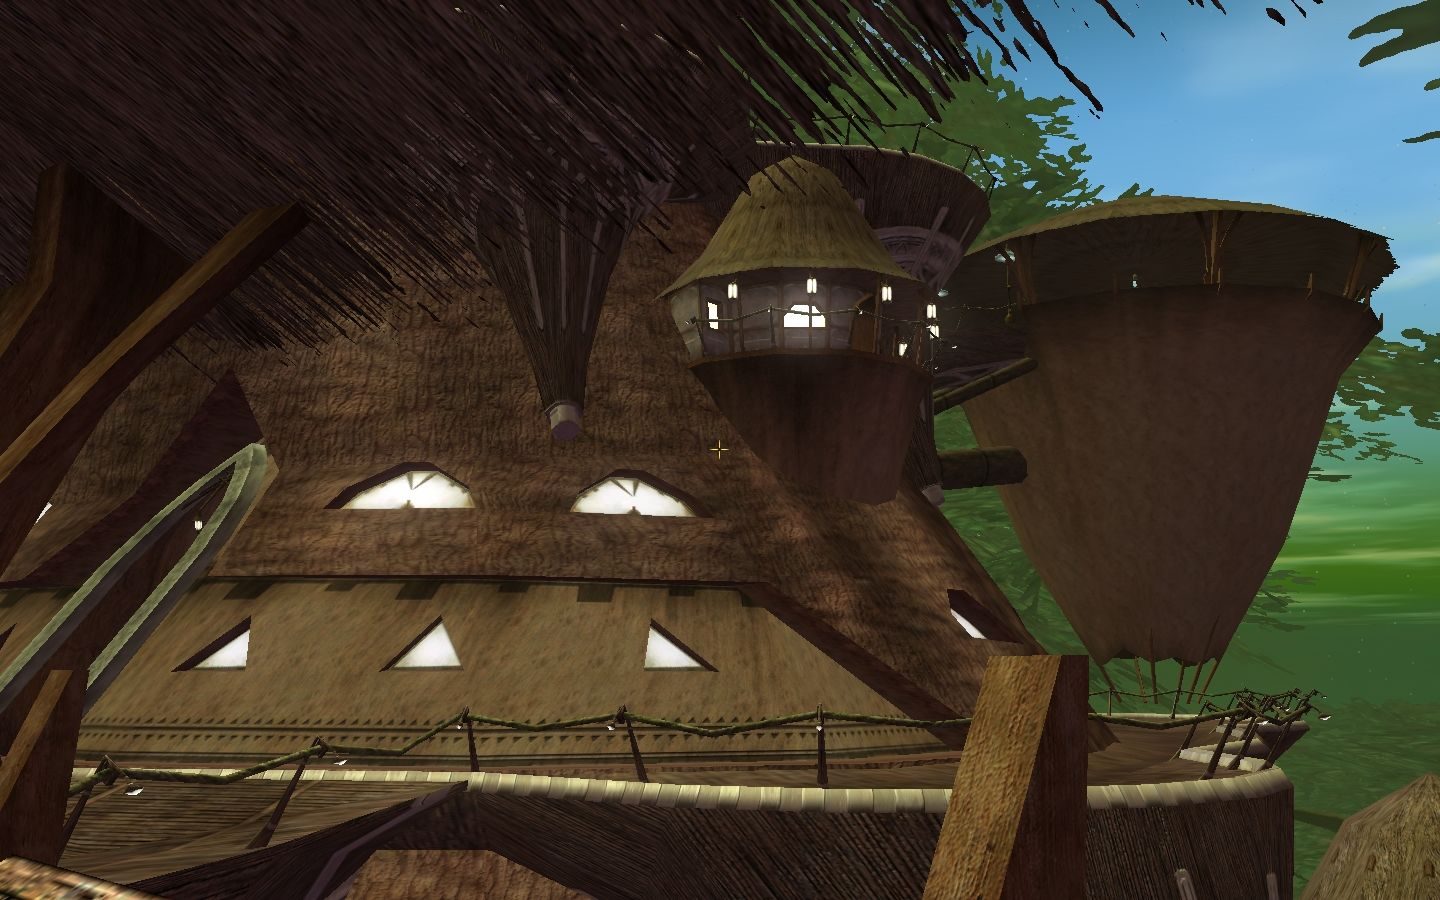 Star Wars: Galaxies - Episode III Rage of the Wookiees Windows Treetop platforms and houses